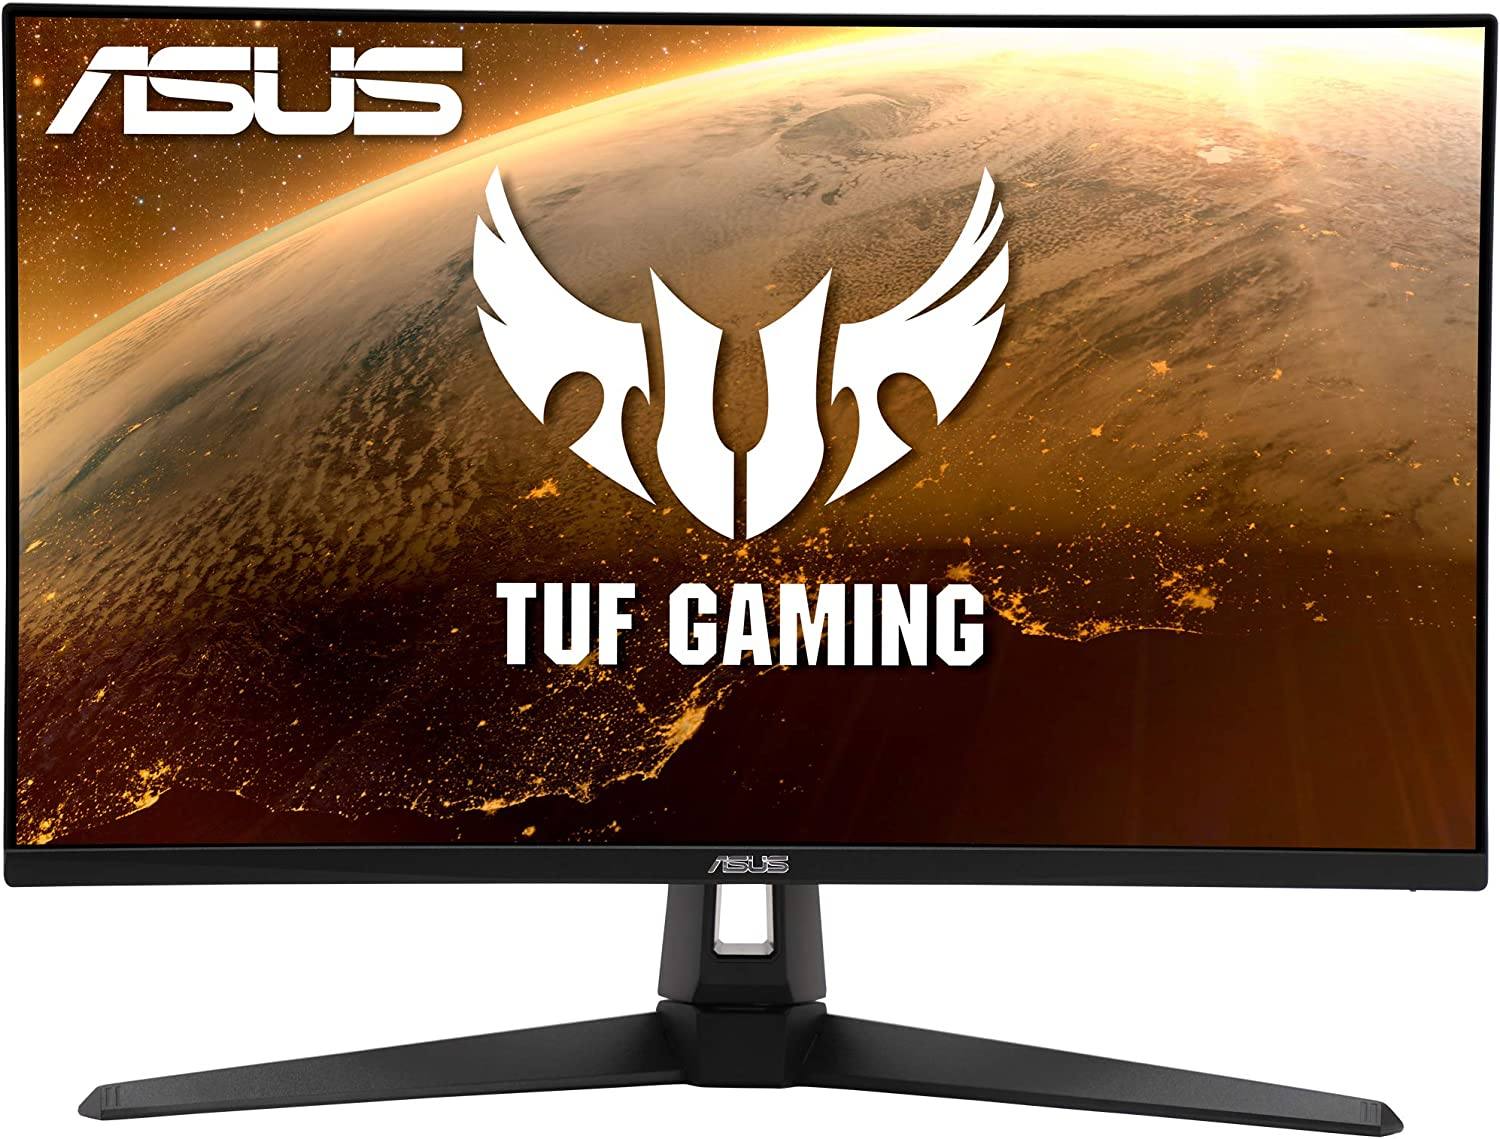 """ASUS TUF Gaming VG27AQ1A 27"""" HDR Gaming Monitor, WQHD (2560 x 1440), 170Hz (Supports 144Hz), IPS, 1ms, G-SYNC Compatible, Extreme Low Motion Blur, Eye Care, HDMI DisplayPort, HDR 10, BLACK"""